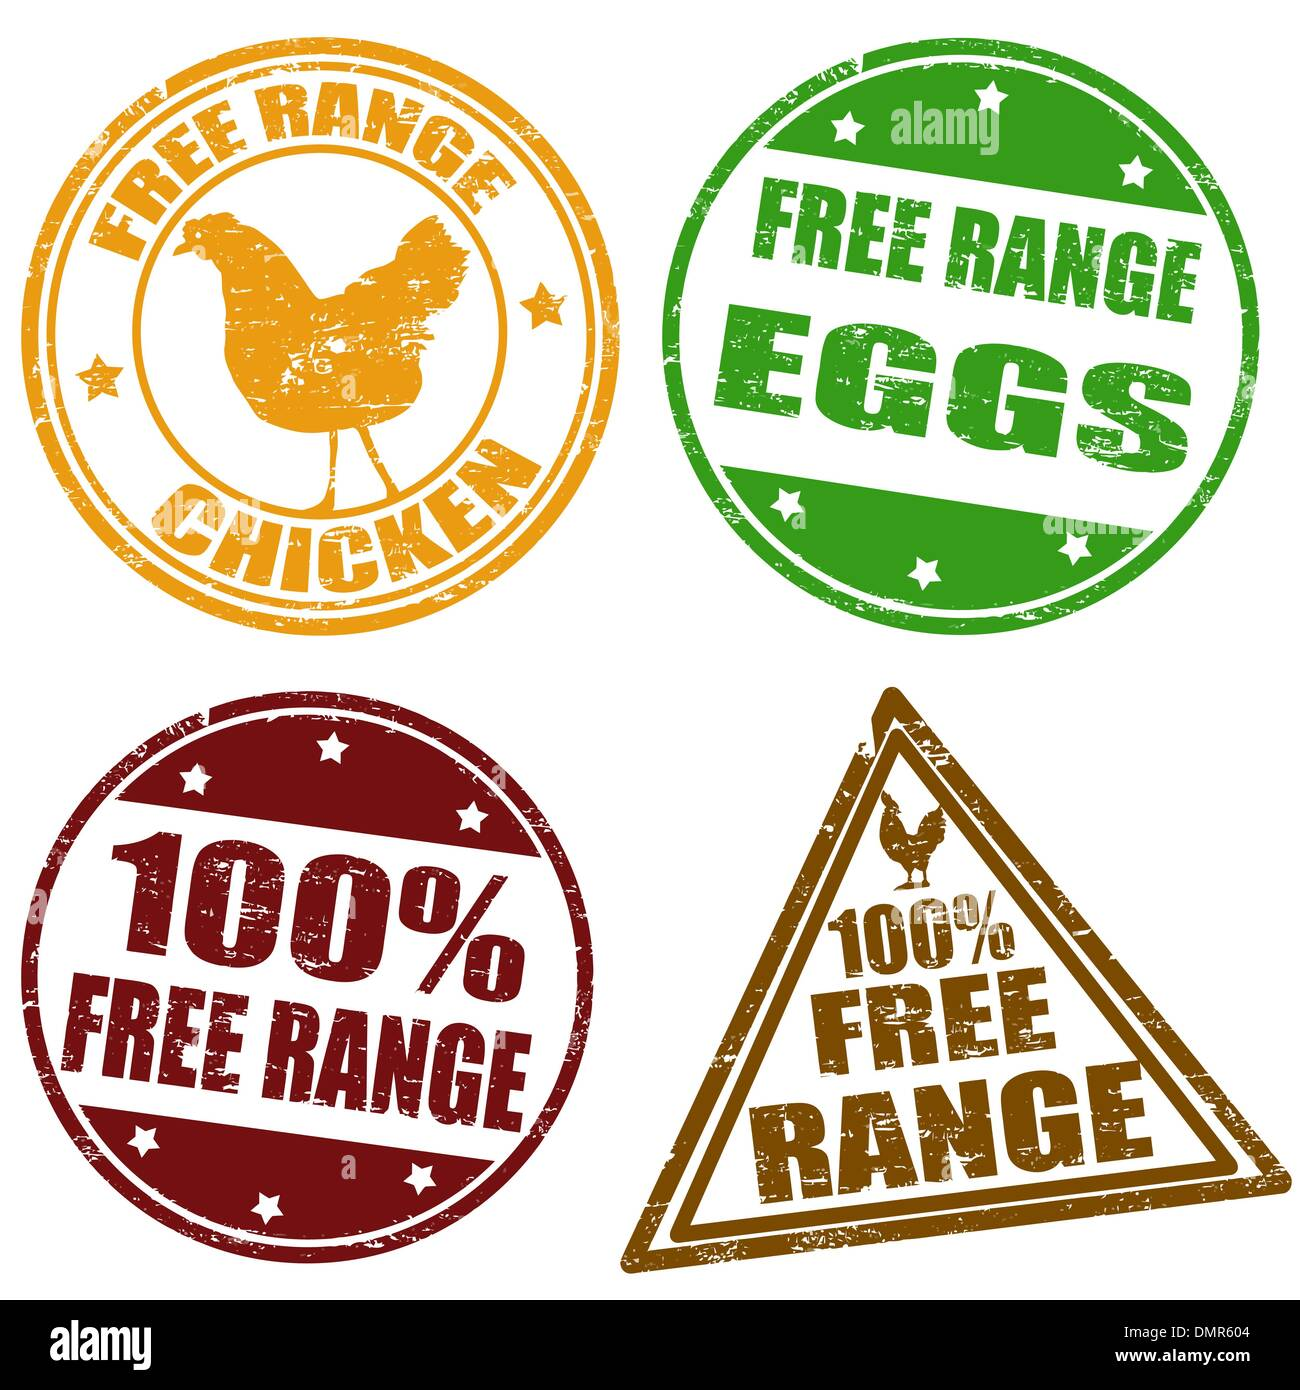 Set of free range stamps - Stock Vector